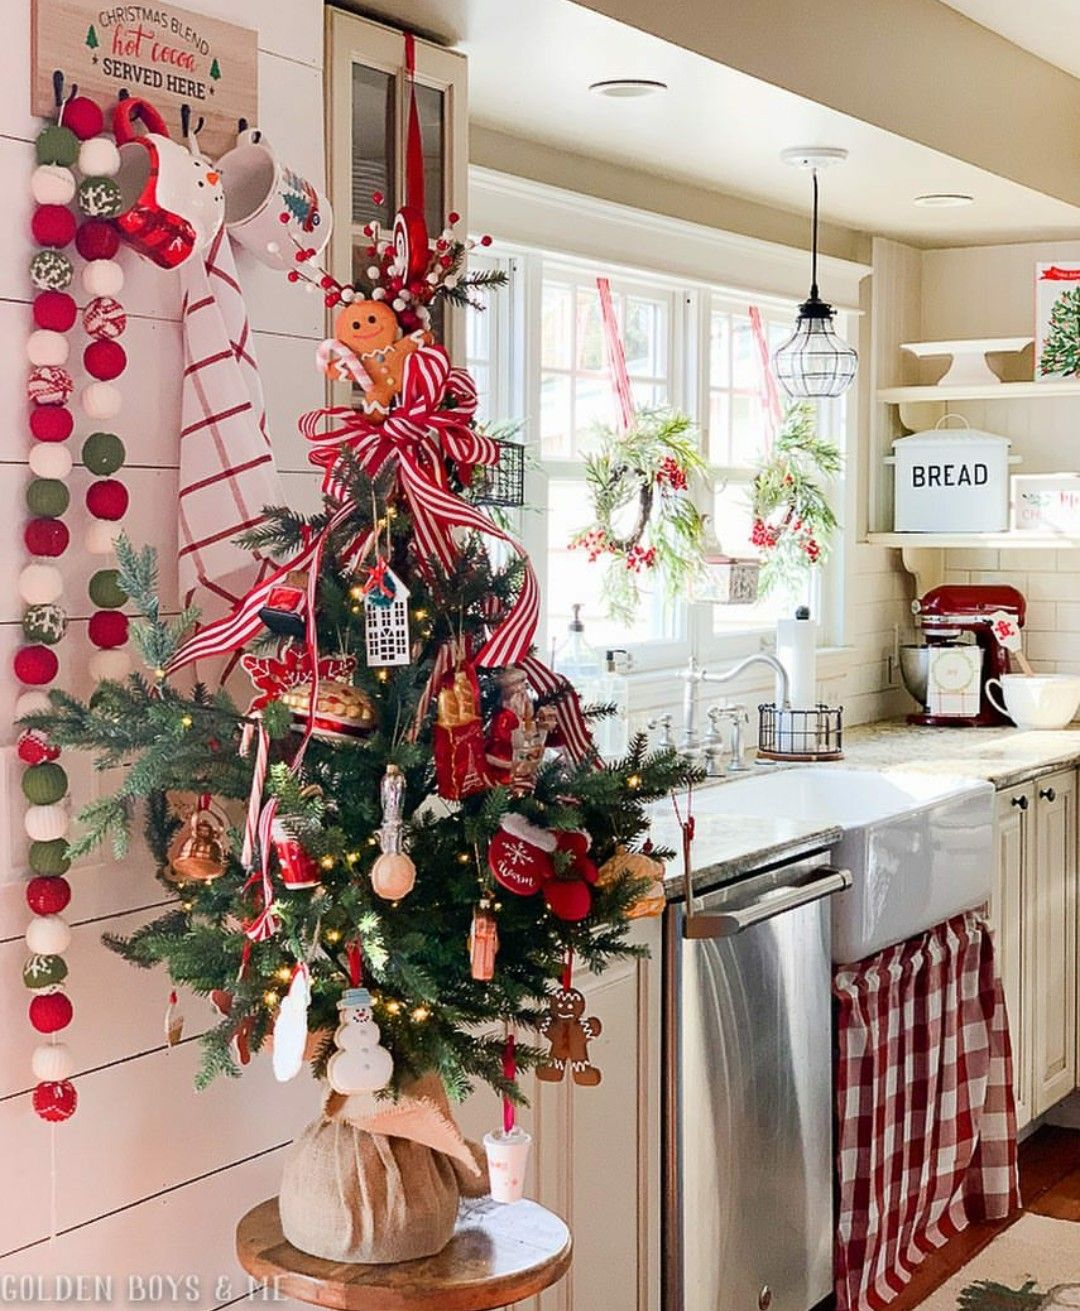 Albero Di Natale Kitchen.Pin By Lorena Brumana On Christmas Christmas Kitchen Decor Christmas Decorations Christmas Decorations Bedroom